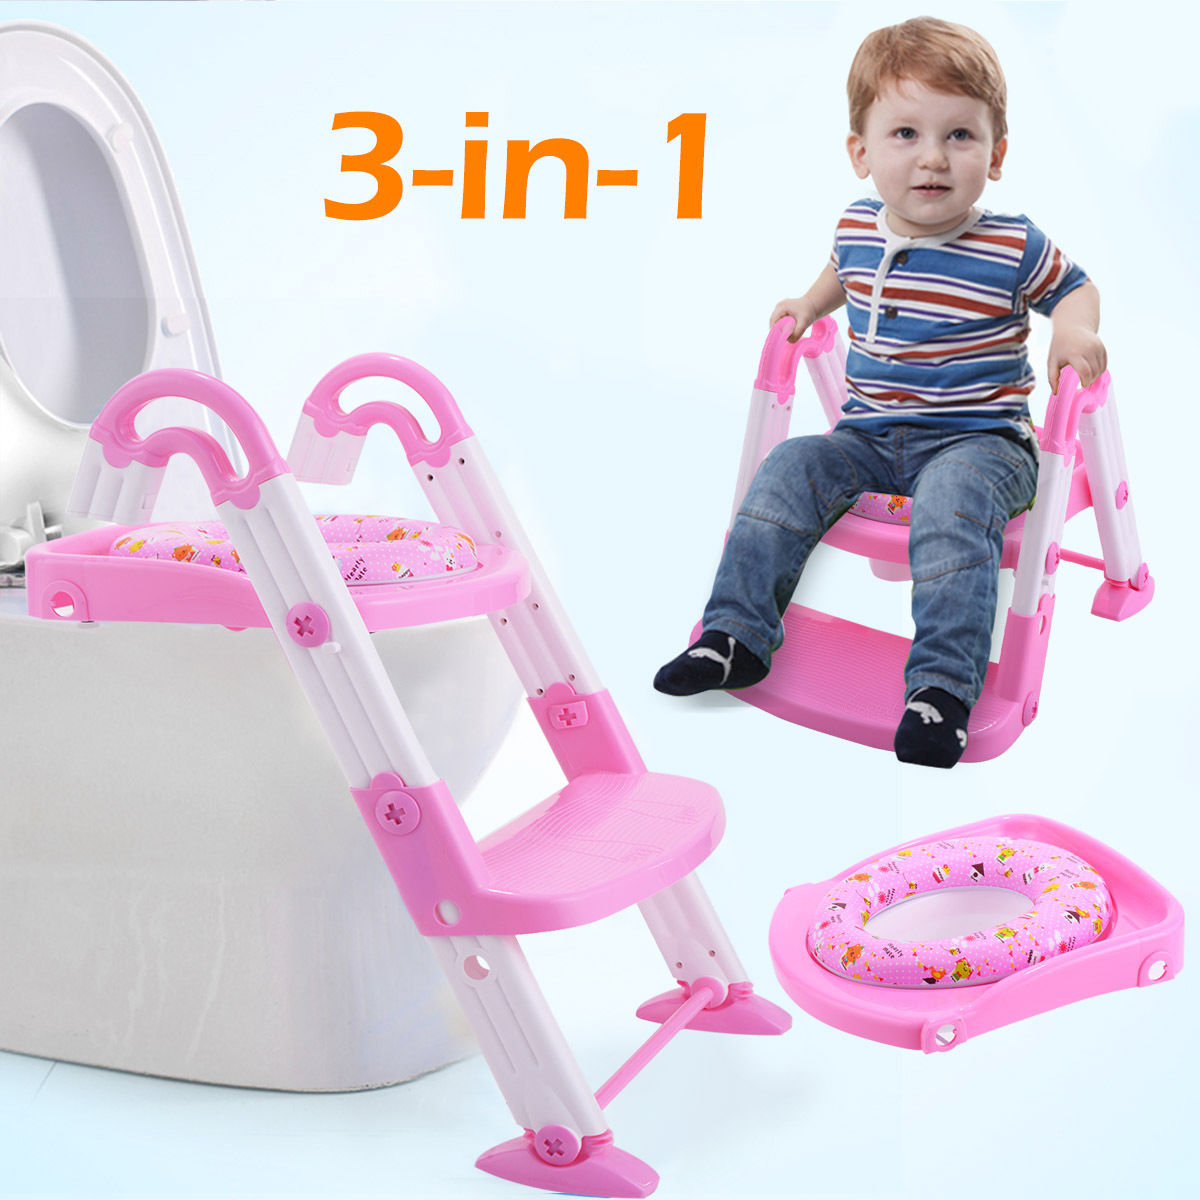 Costway 3 in 1 Baby Potty Training Toilet Chair Seat Step Ladder Trainer Toddler Pink by costway